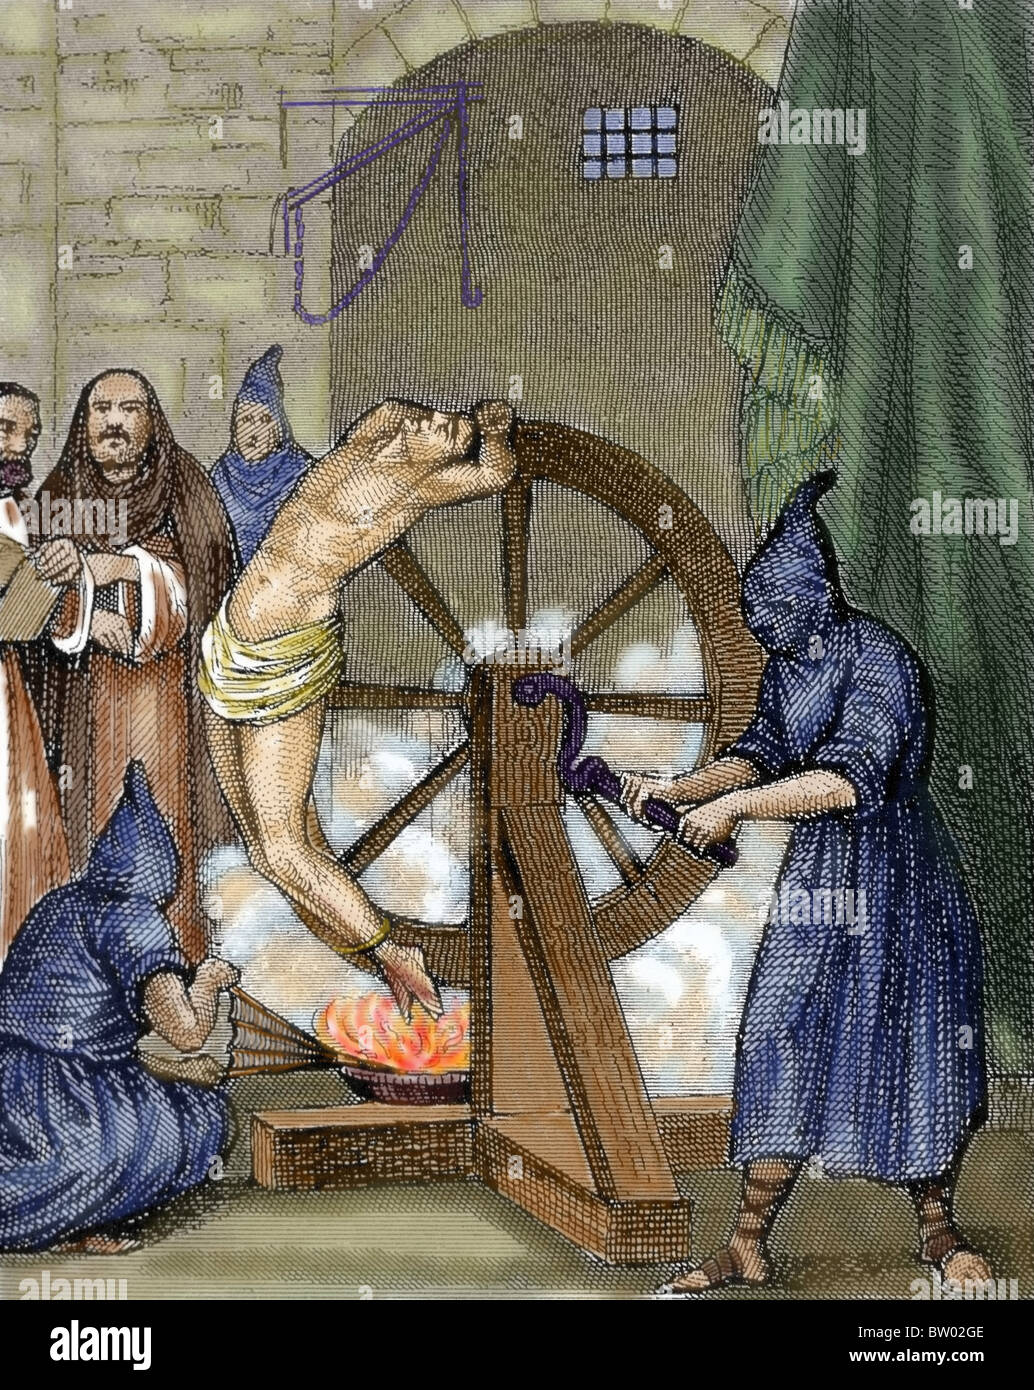 Inquisition. Instrument of torture. Wheel of Fortune. Colored engraving. - Stock Image